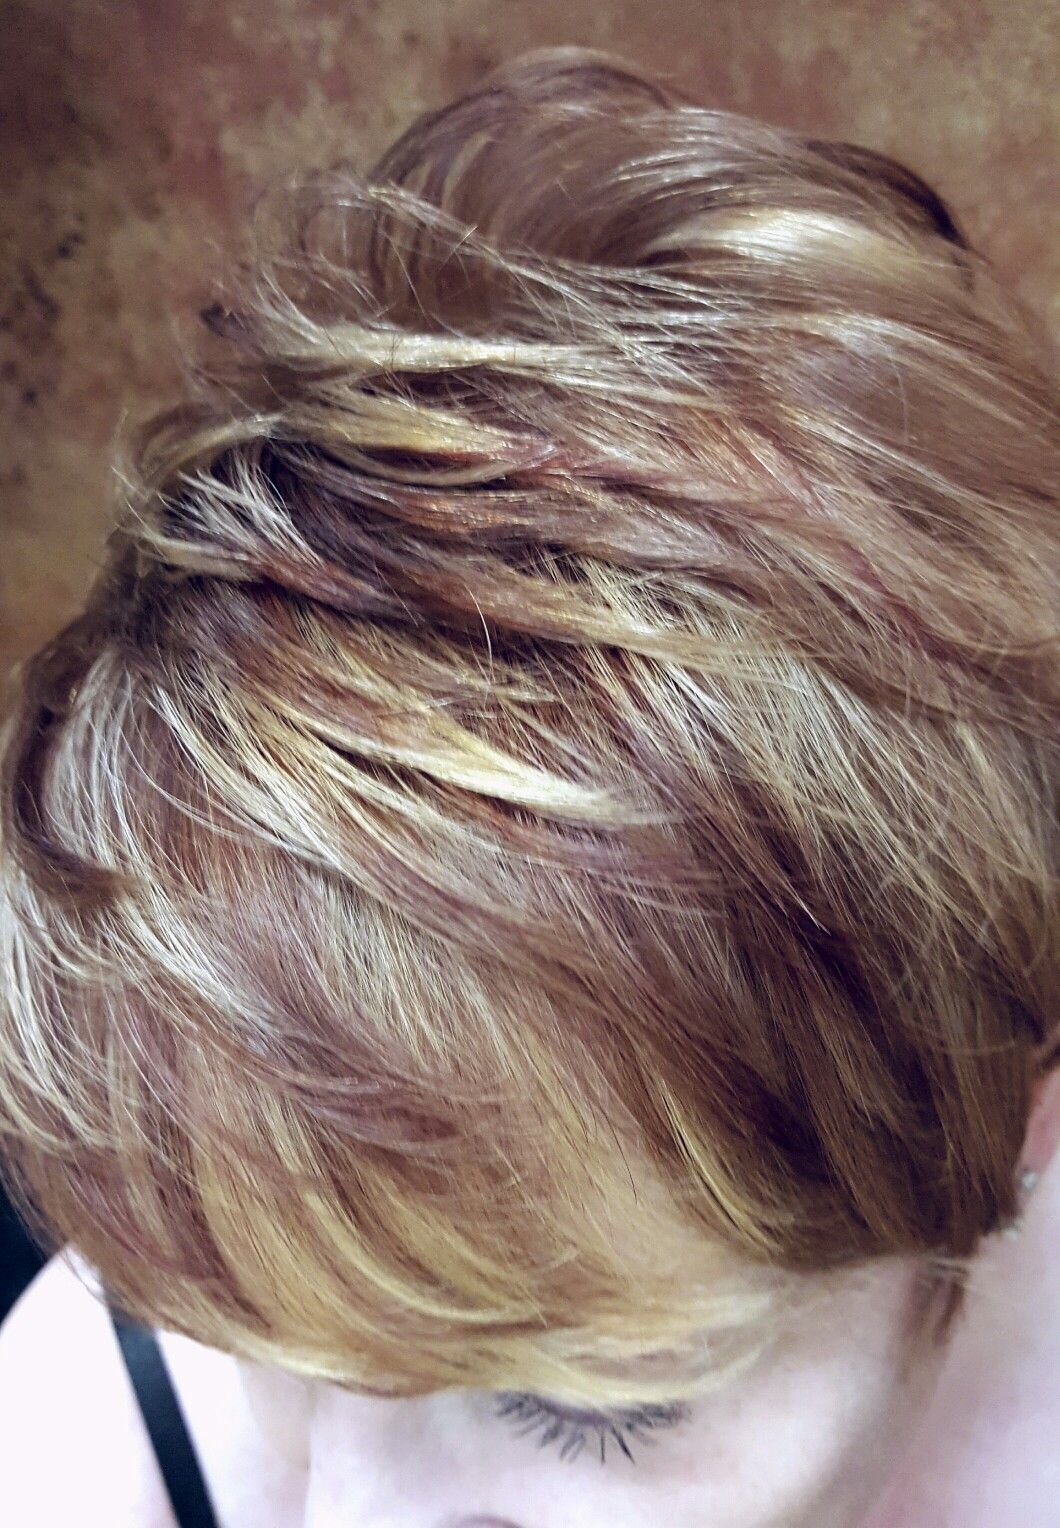 Iamgoldwell shorthair illusionsofshirlington highlights hair